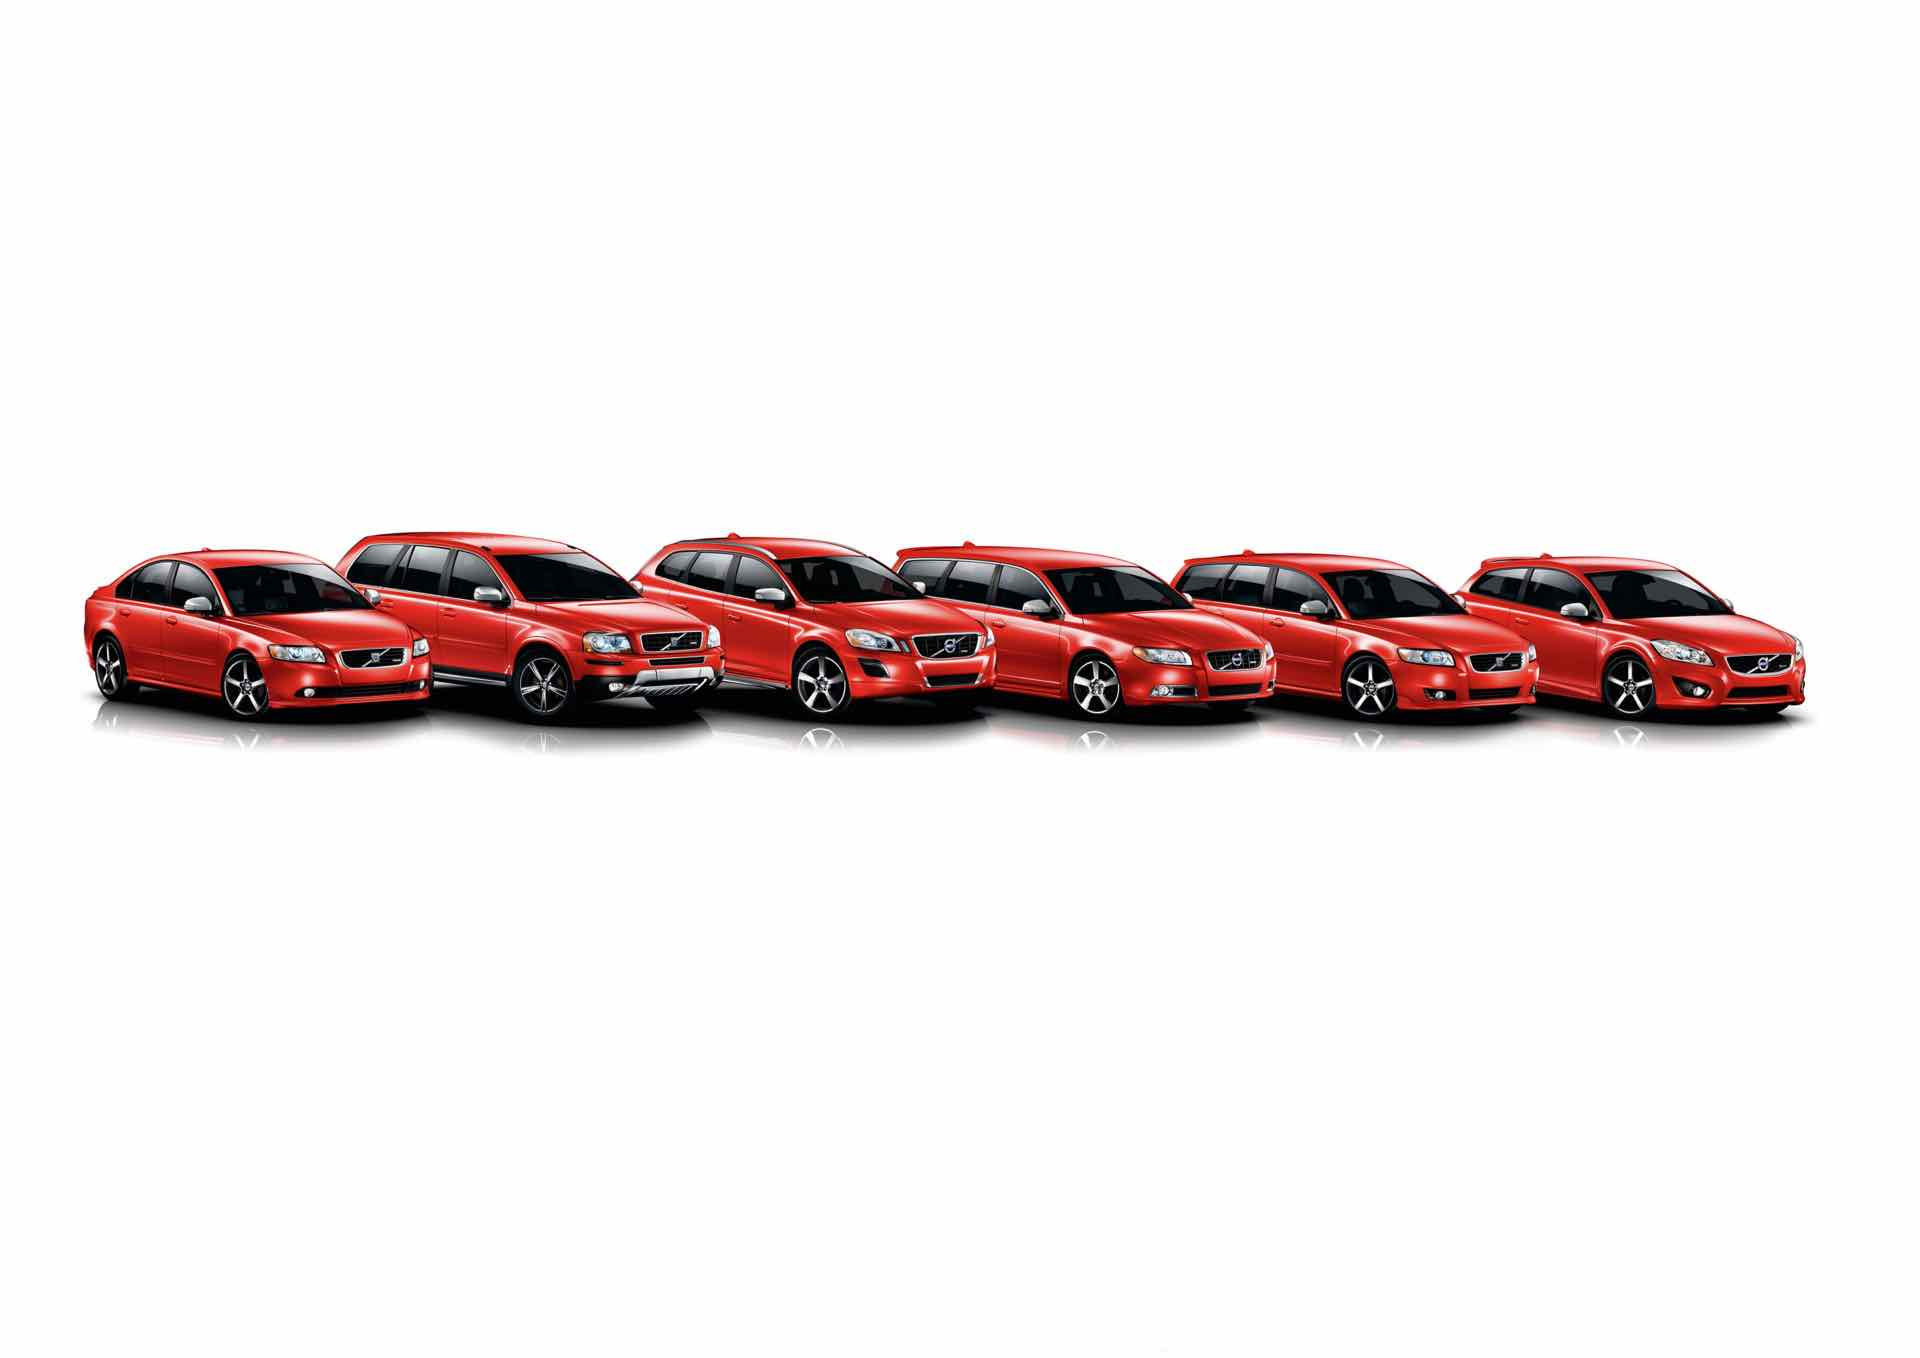 Volvo's Range Of R Design Cars And Suvs, In Red -  2013, R-Design, red